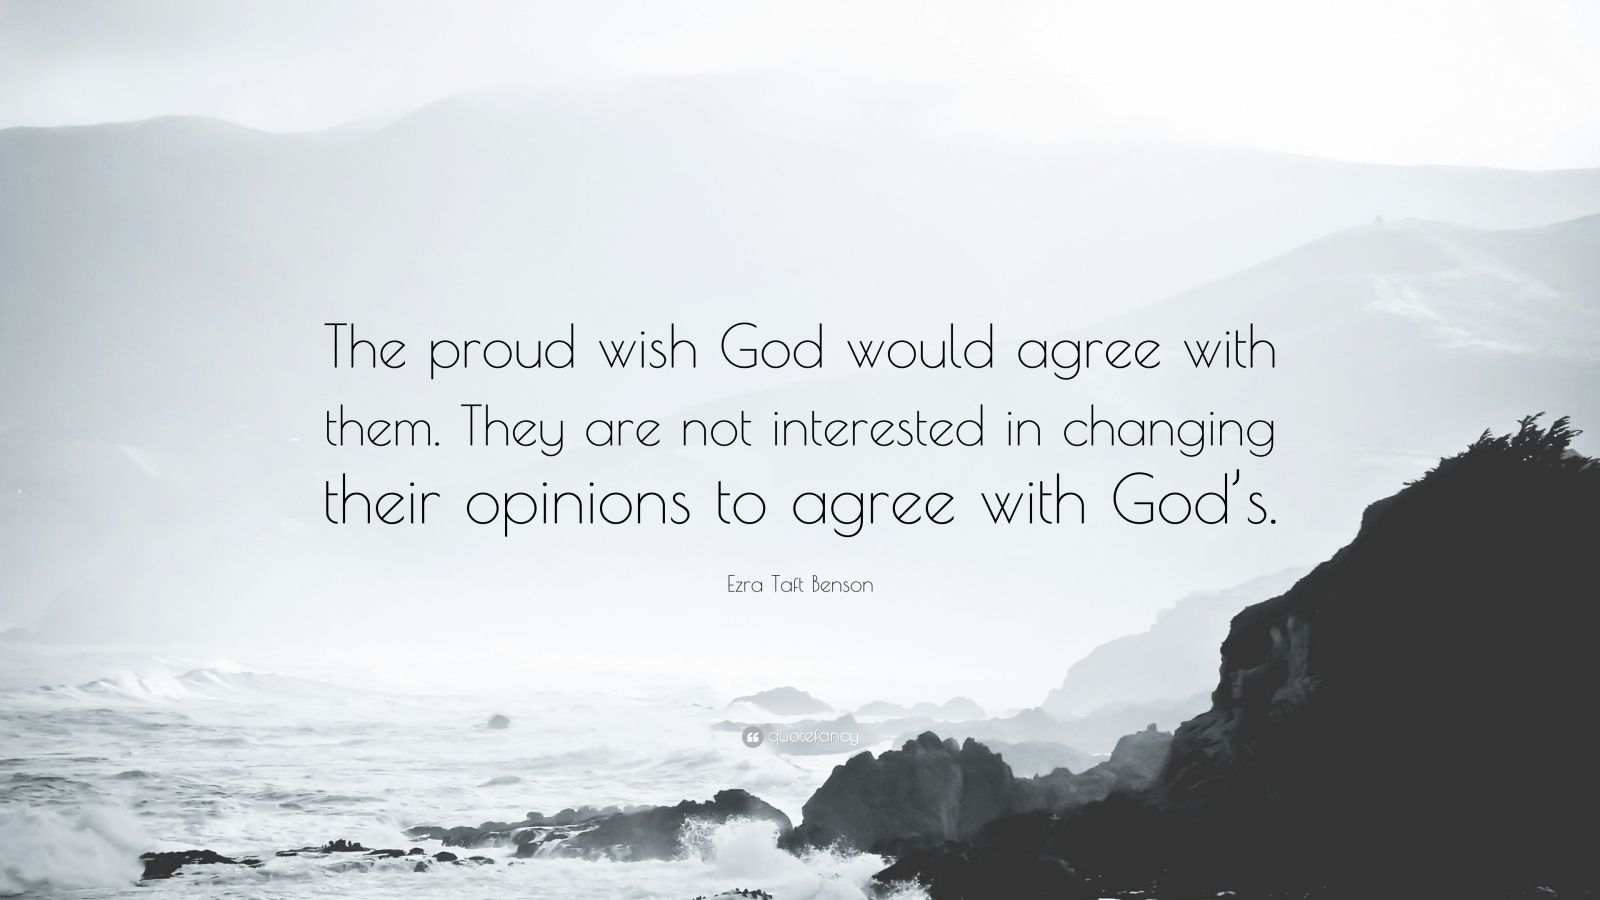 """Ezra Taft Benson Quote: """"The proud wish God would agree with them. They are not interested in changing their opinions to agree with God's."""""""